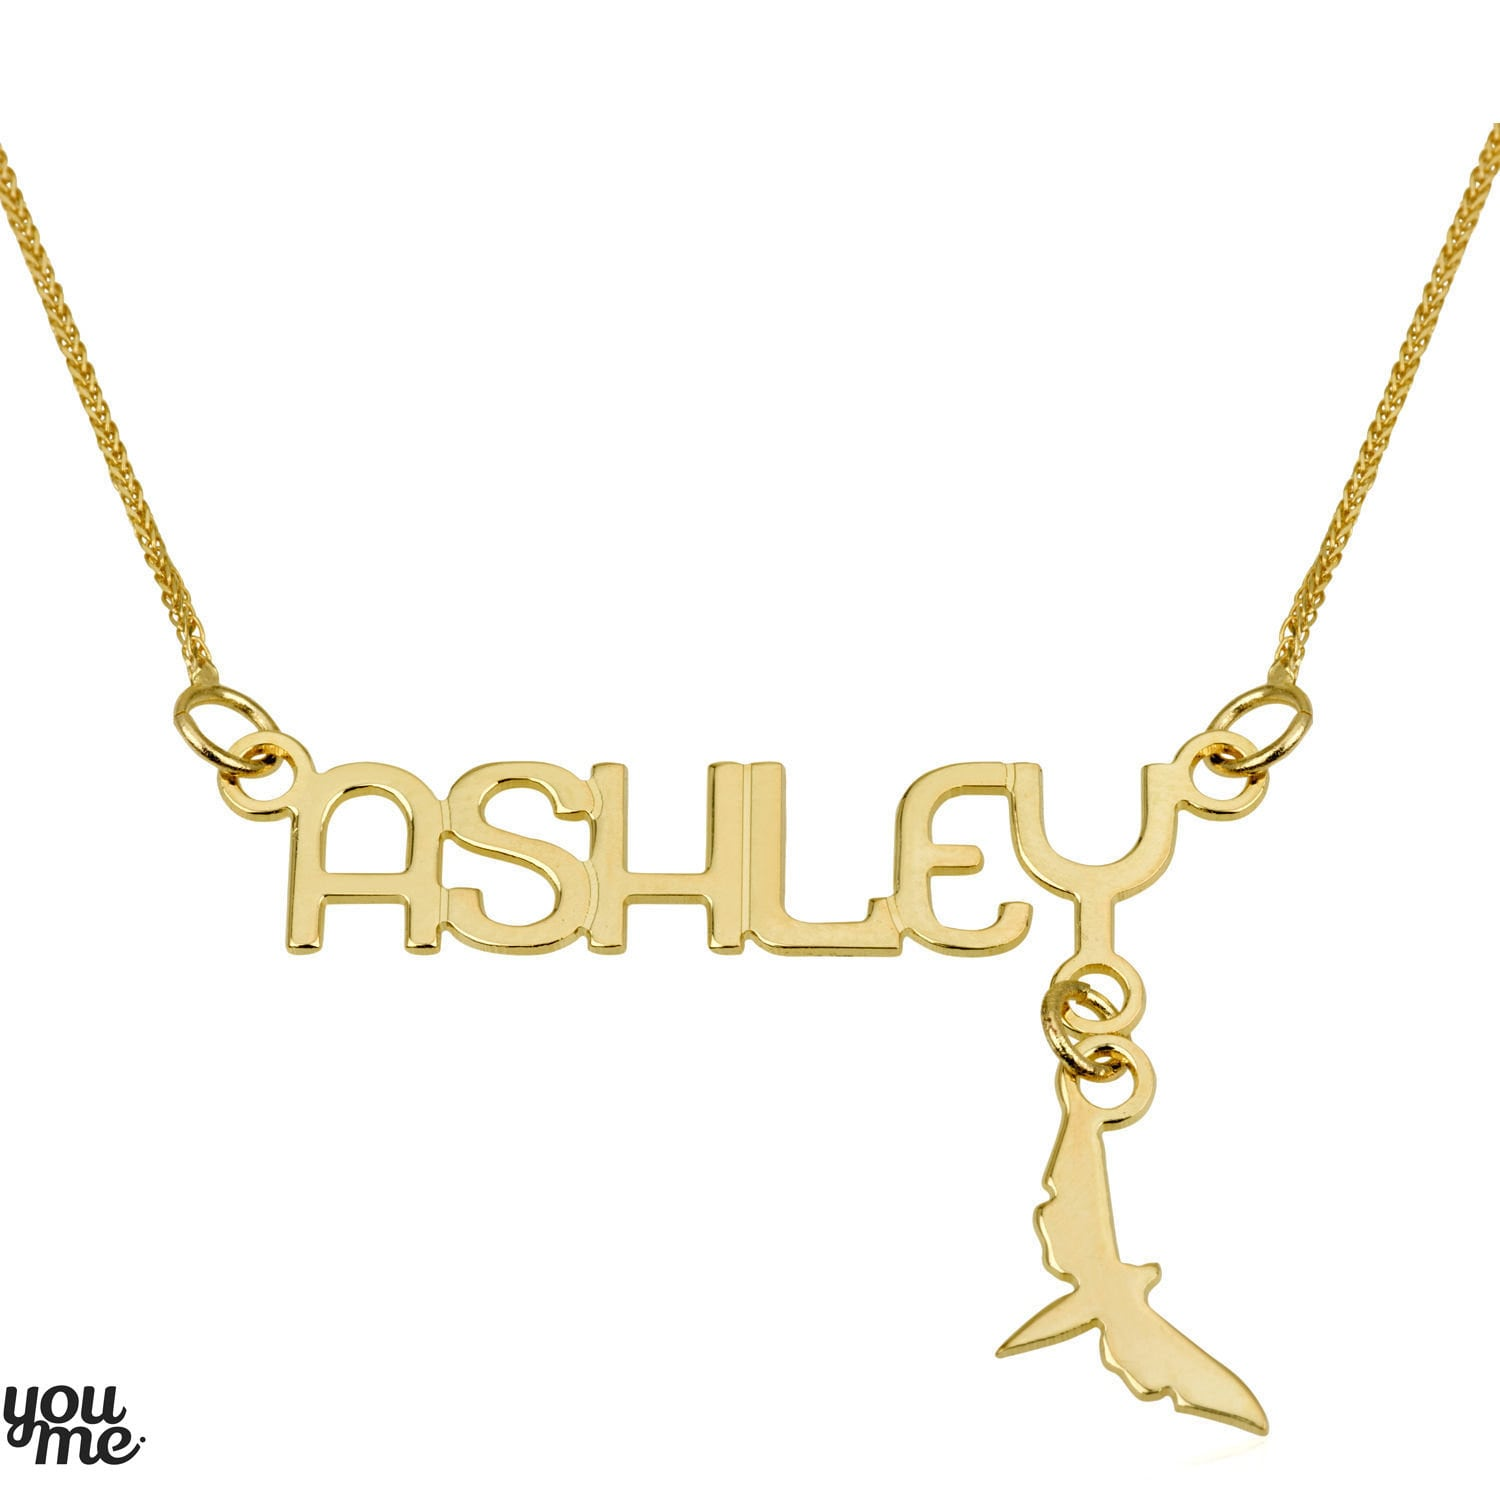 Custom name necklace 14k yellow solid gold by youmegoldjewelry for Cheap gold jewelry near me